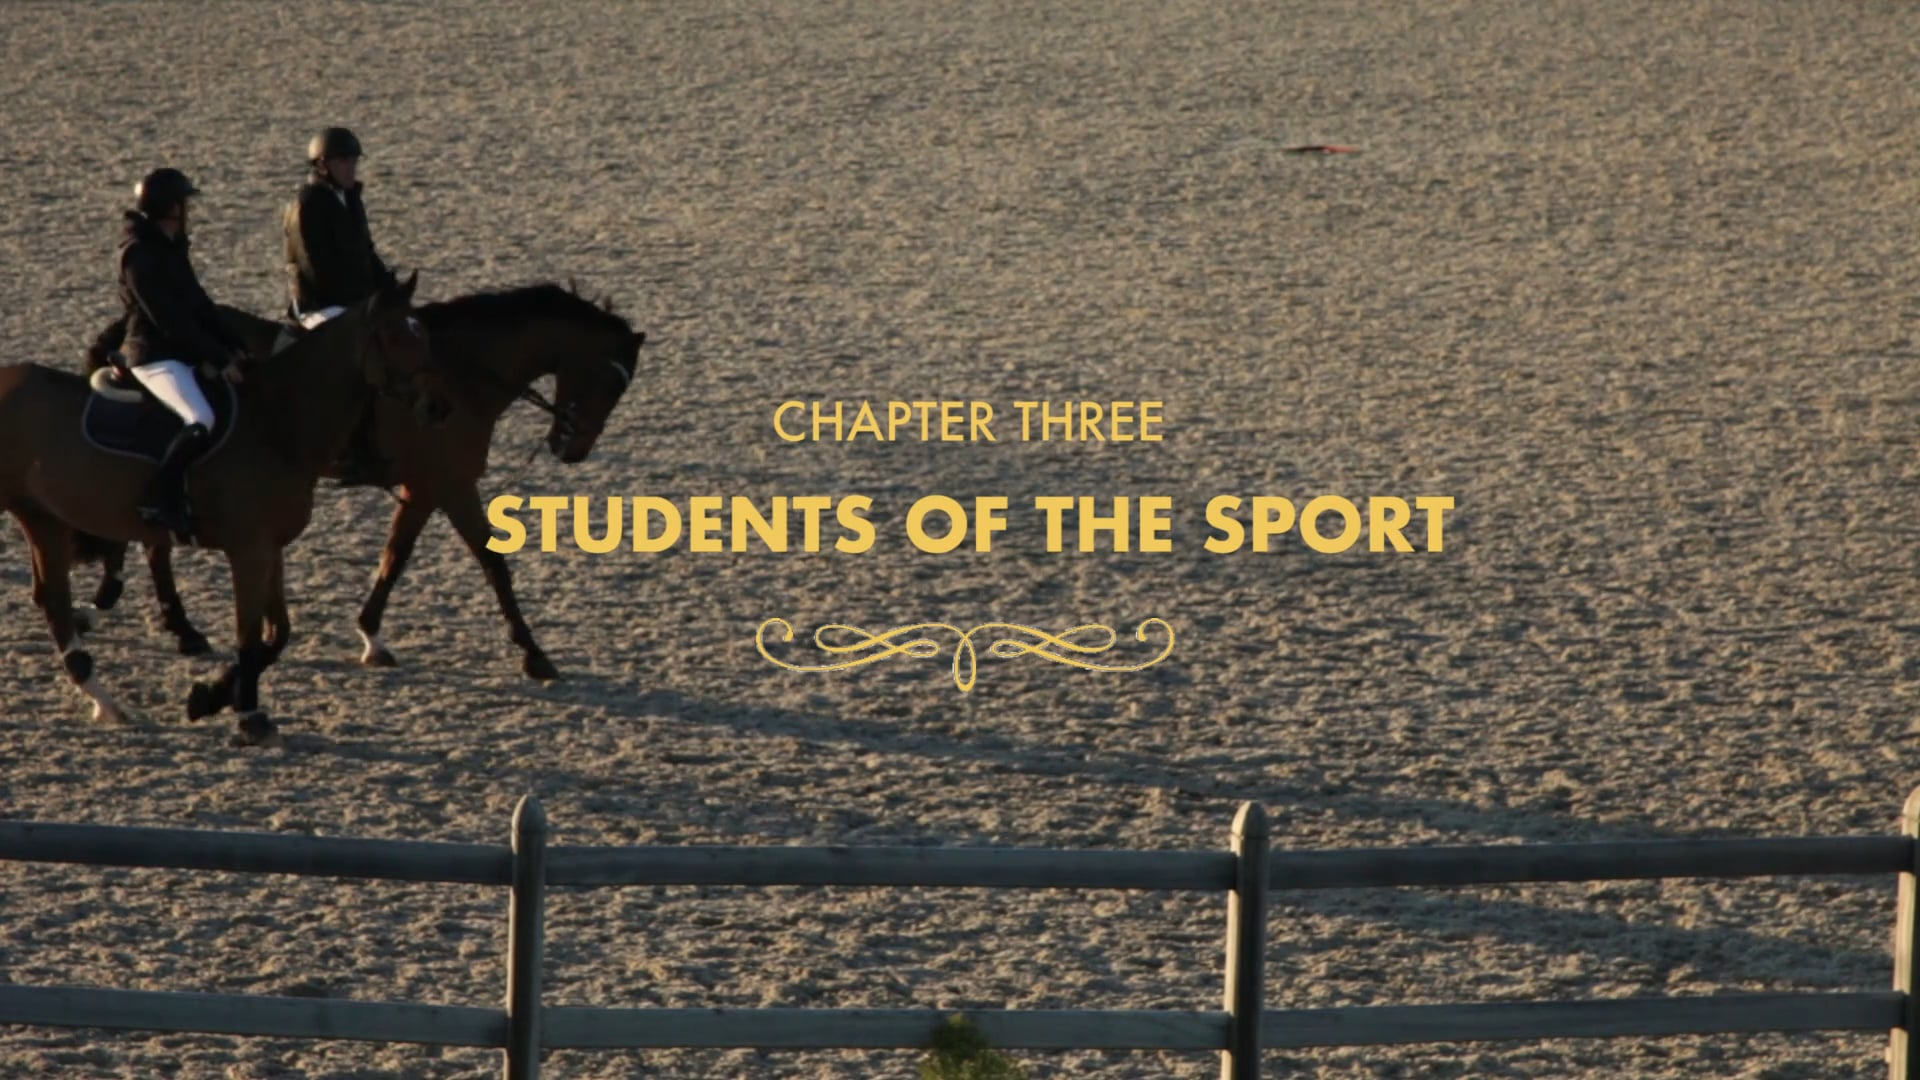 Chapter Three: Students of the Sport